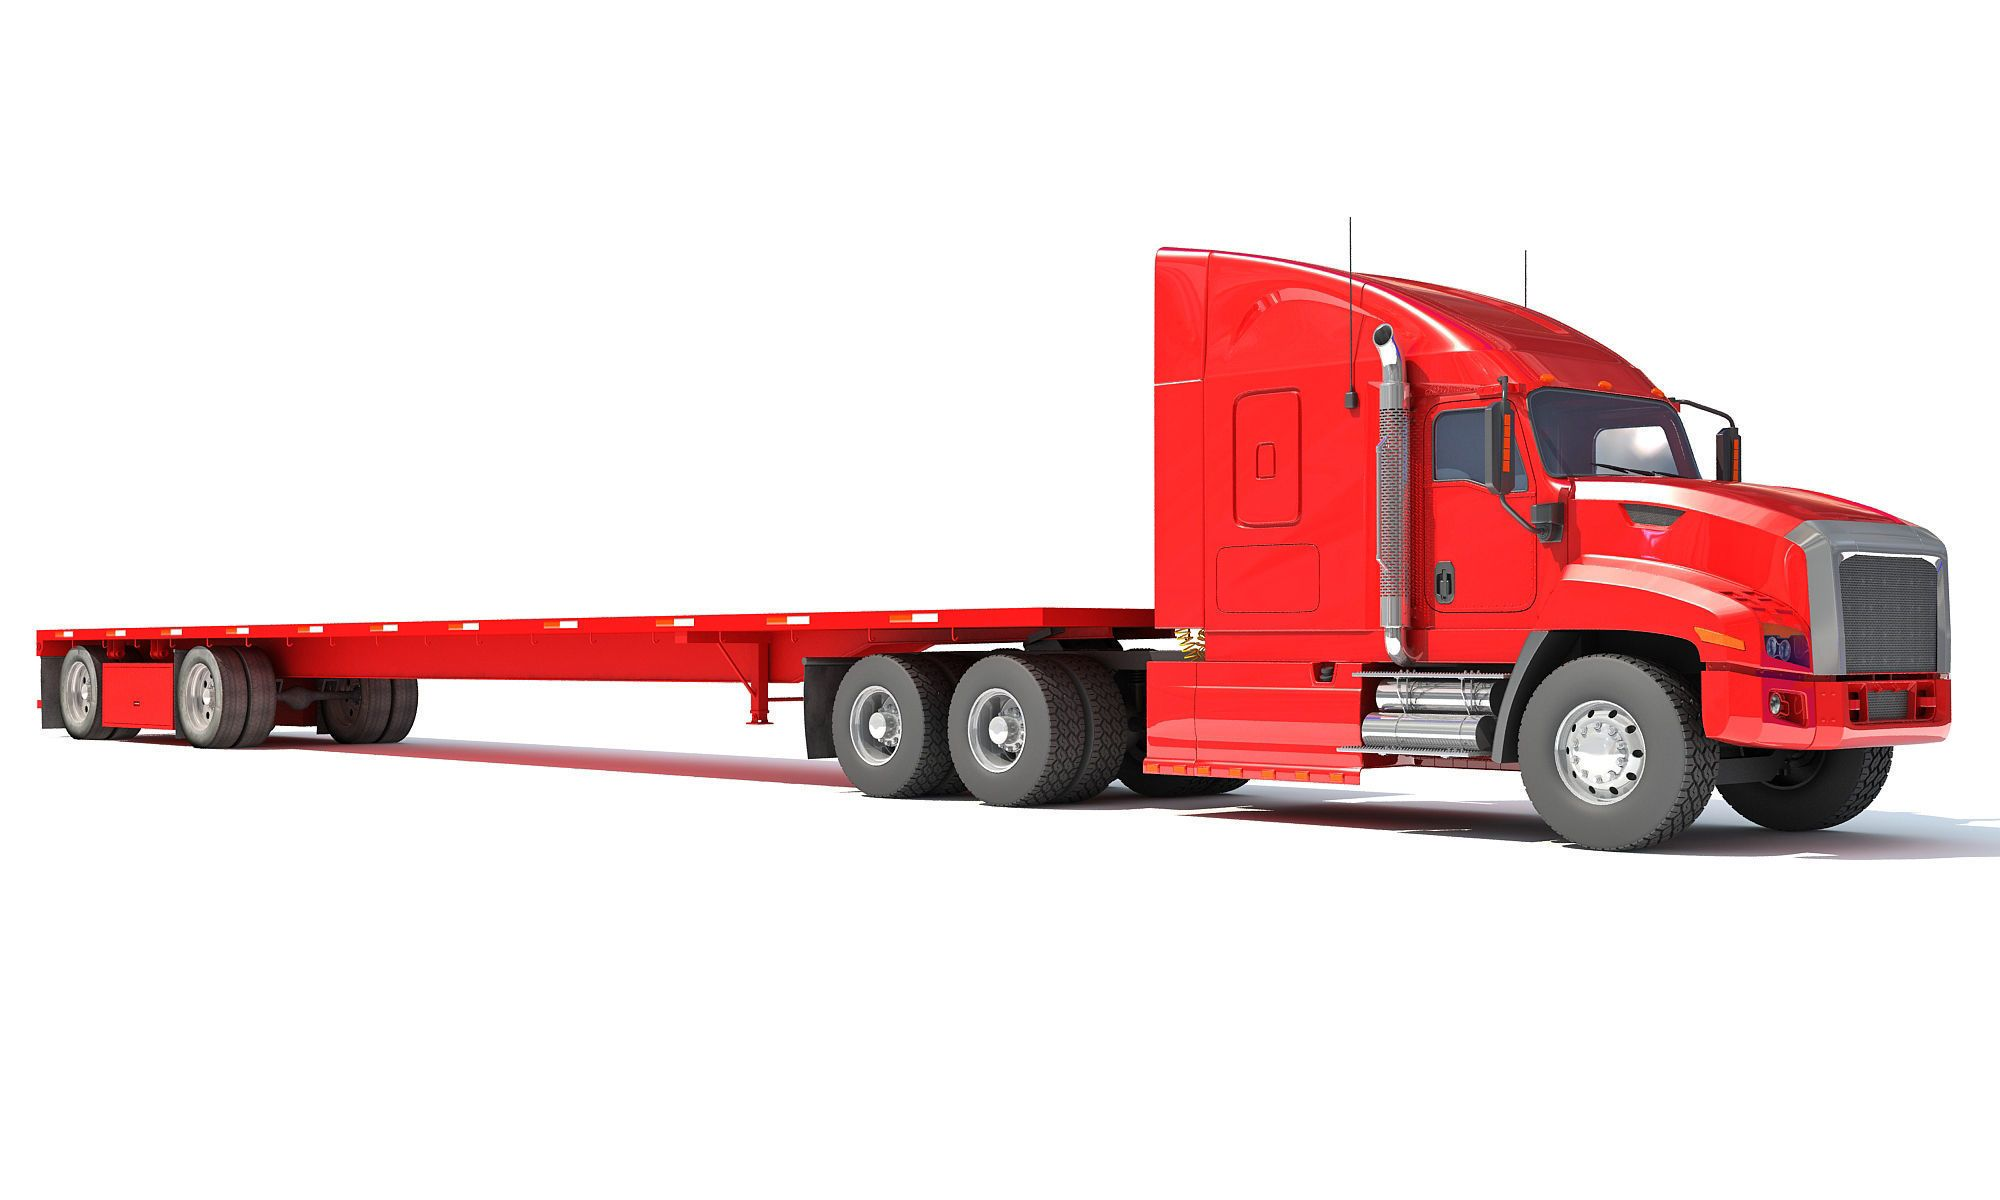 Freightliner Truck With Flatbed Trailer 3d Model With Images